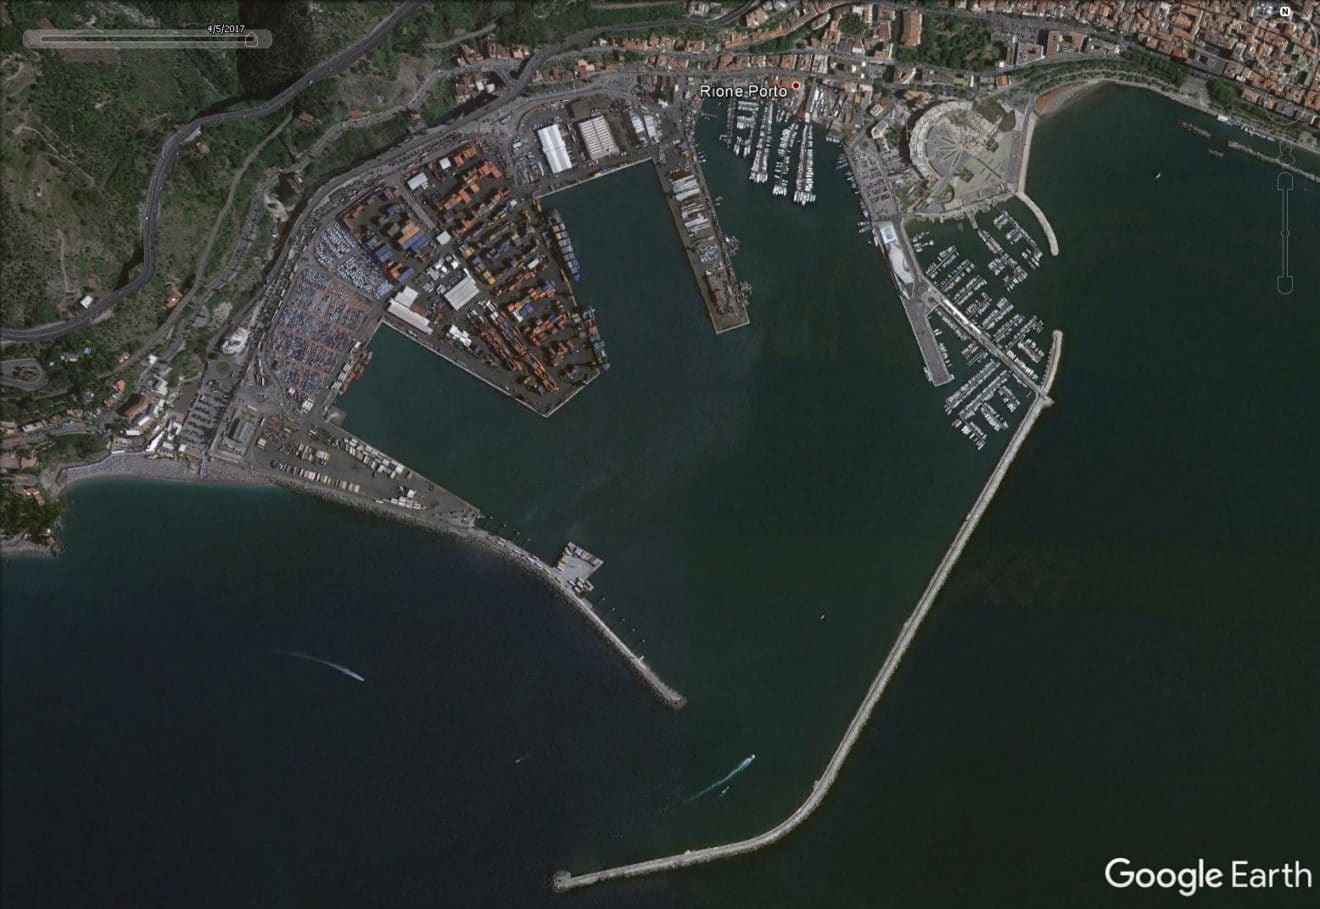 Arpac Monitors Environmental Effects Of Dredging Operations At Salerno Port